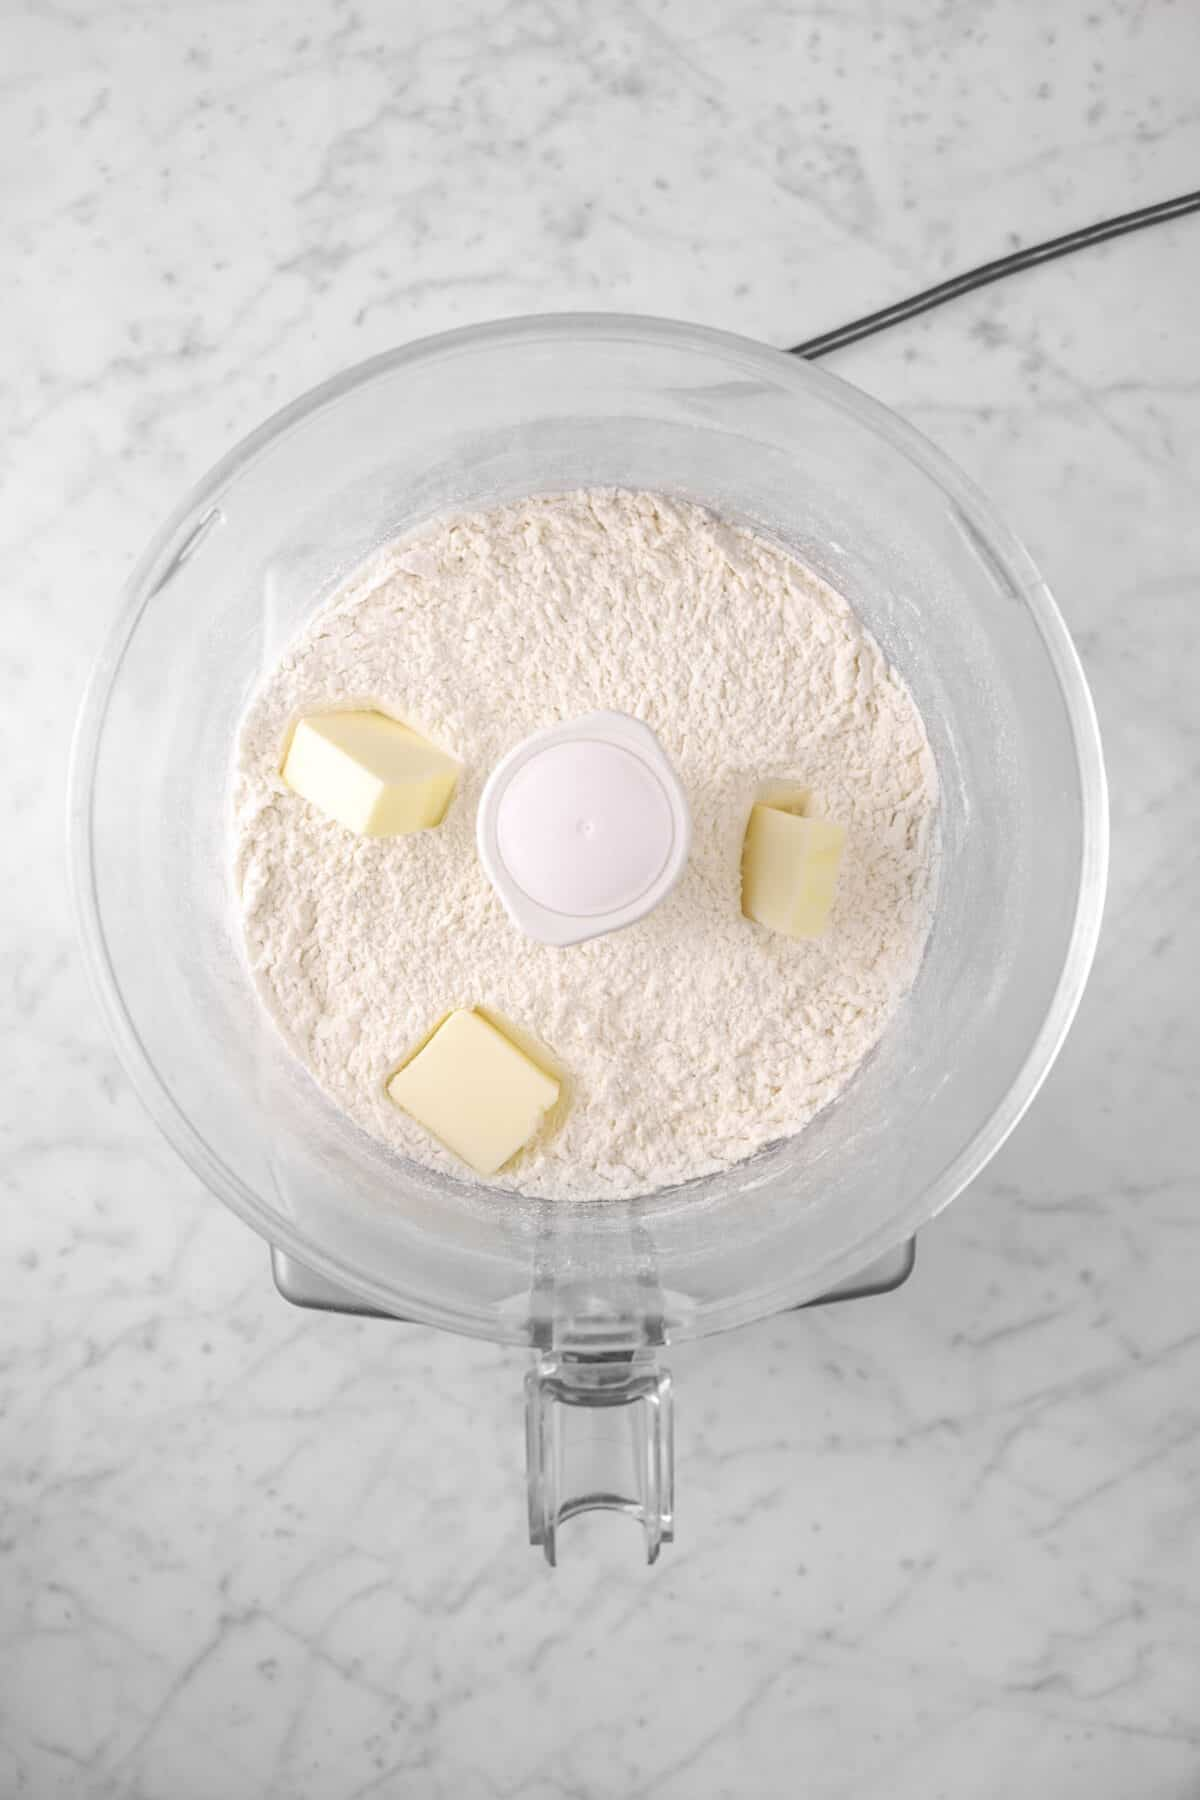 butter added to dry ingredients